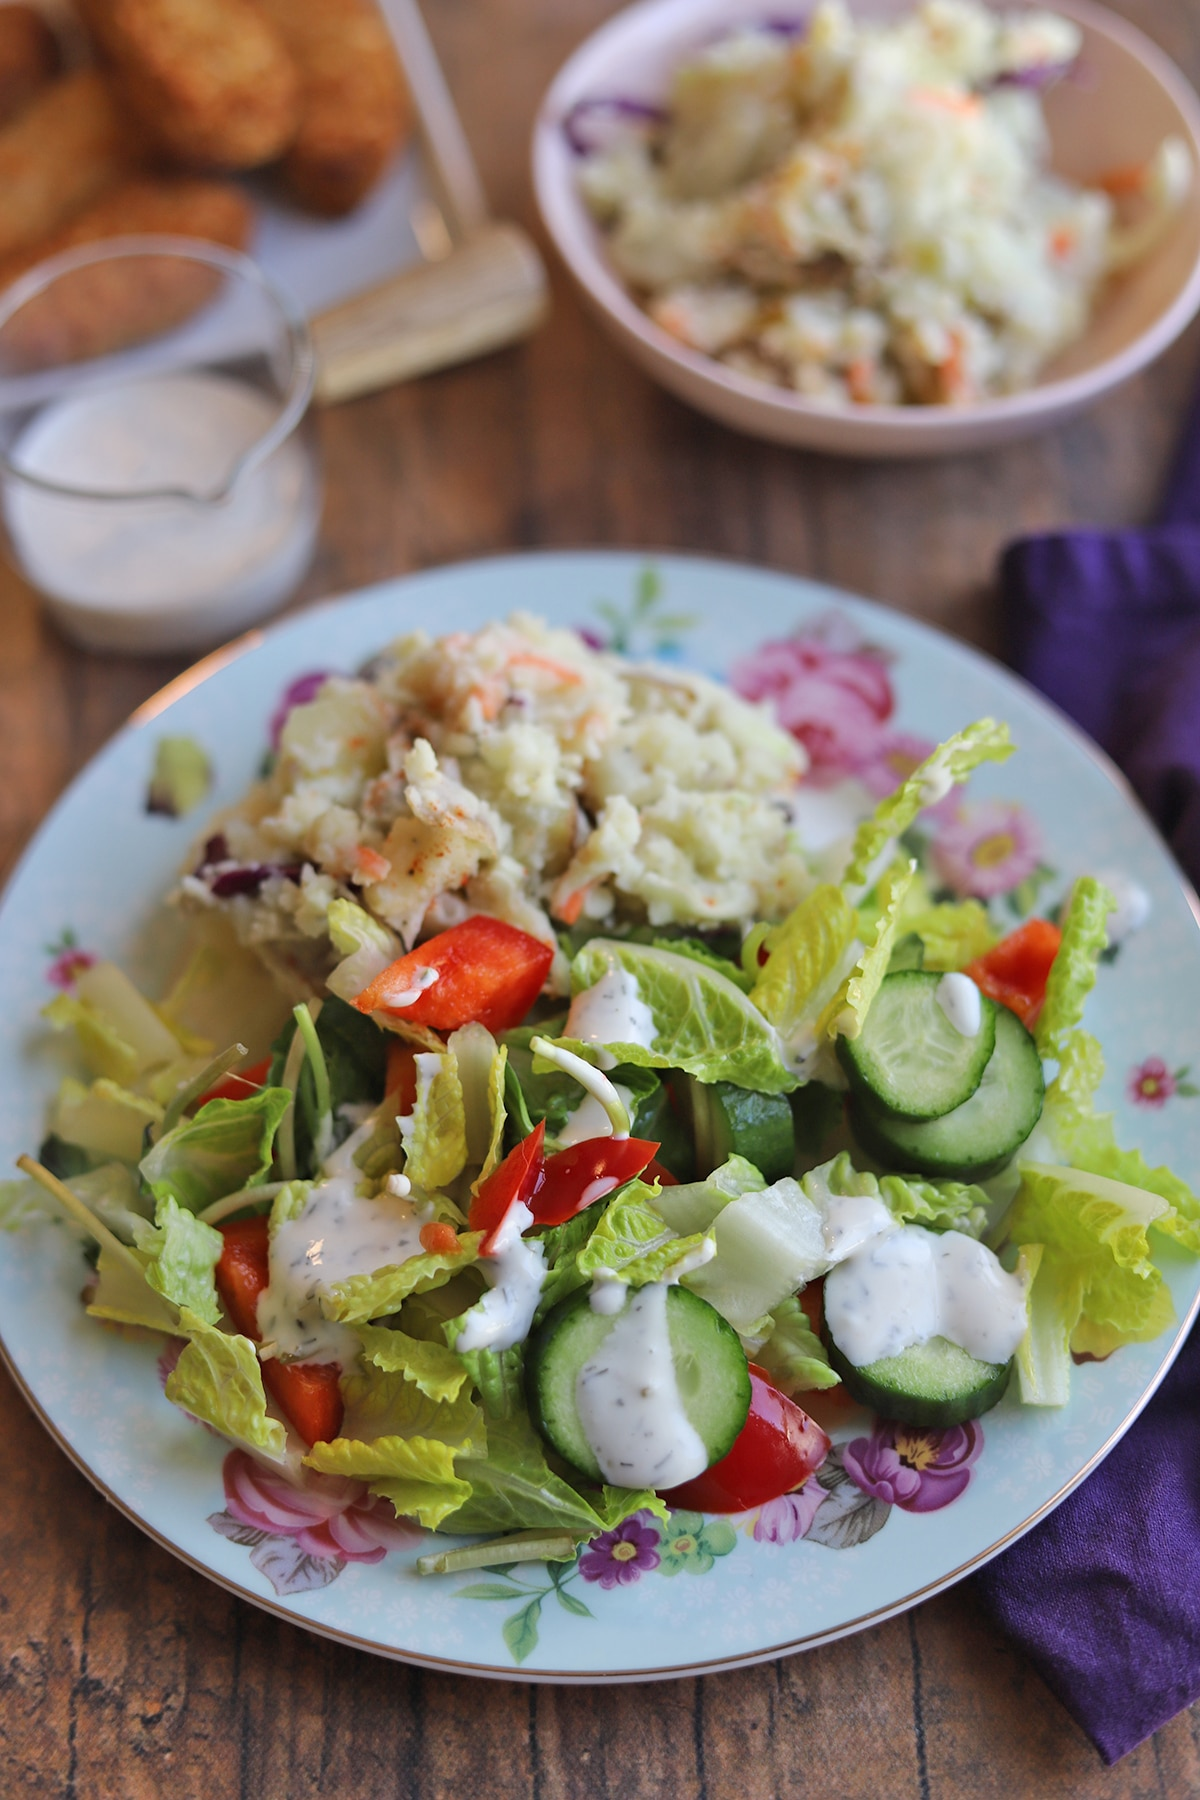 Salad topped with ranch dressing on flowered plate.